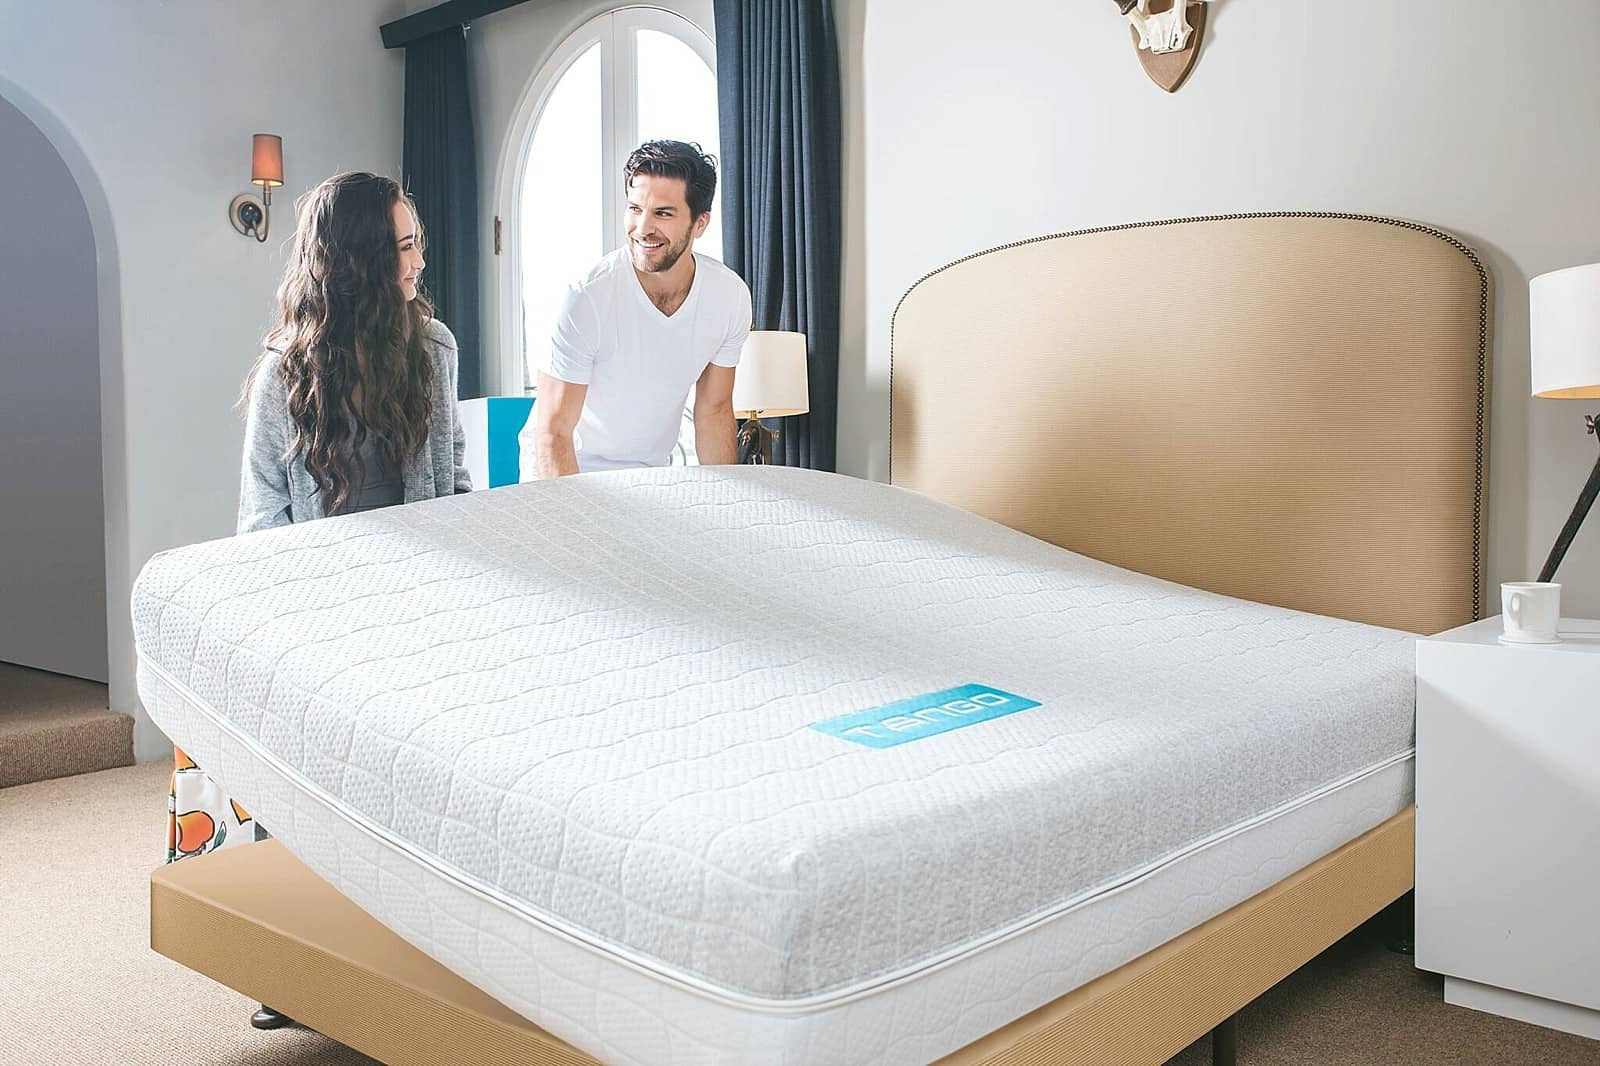 If you've seen or heard of the Purple Bed, be sure to check our review for more information on one of the most popular new mattresses to date in mid